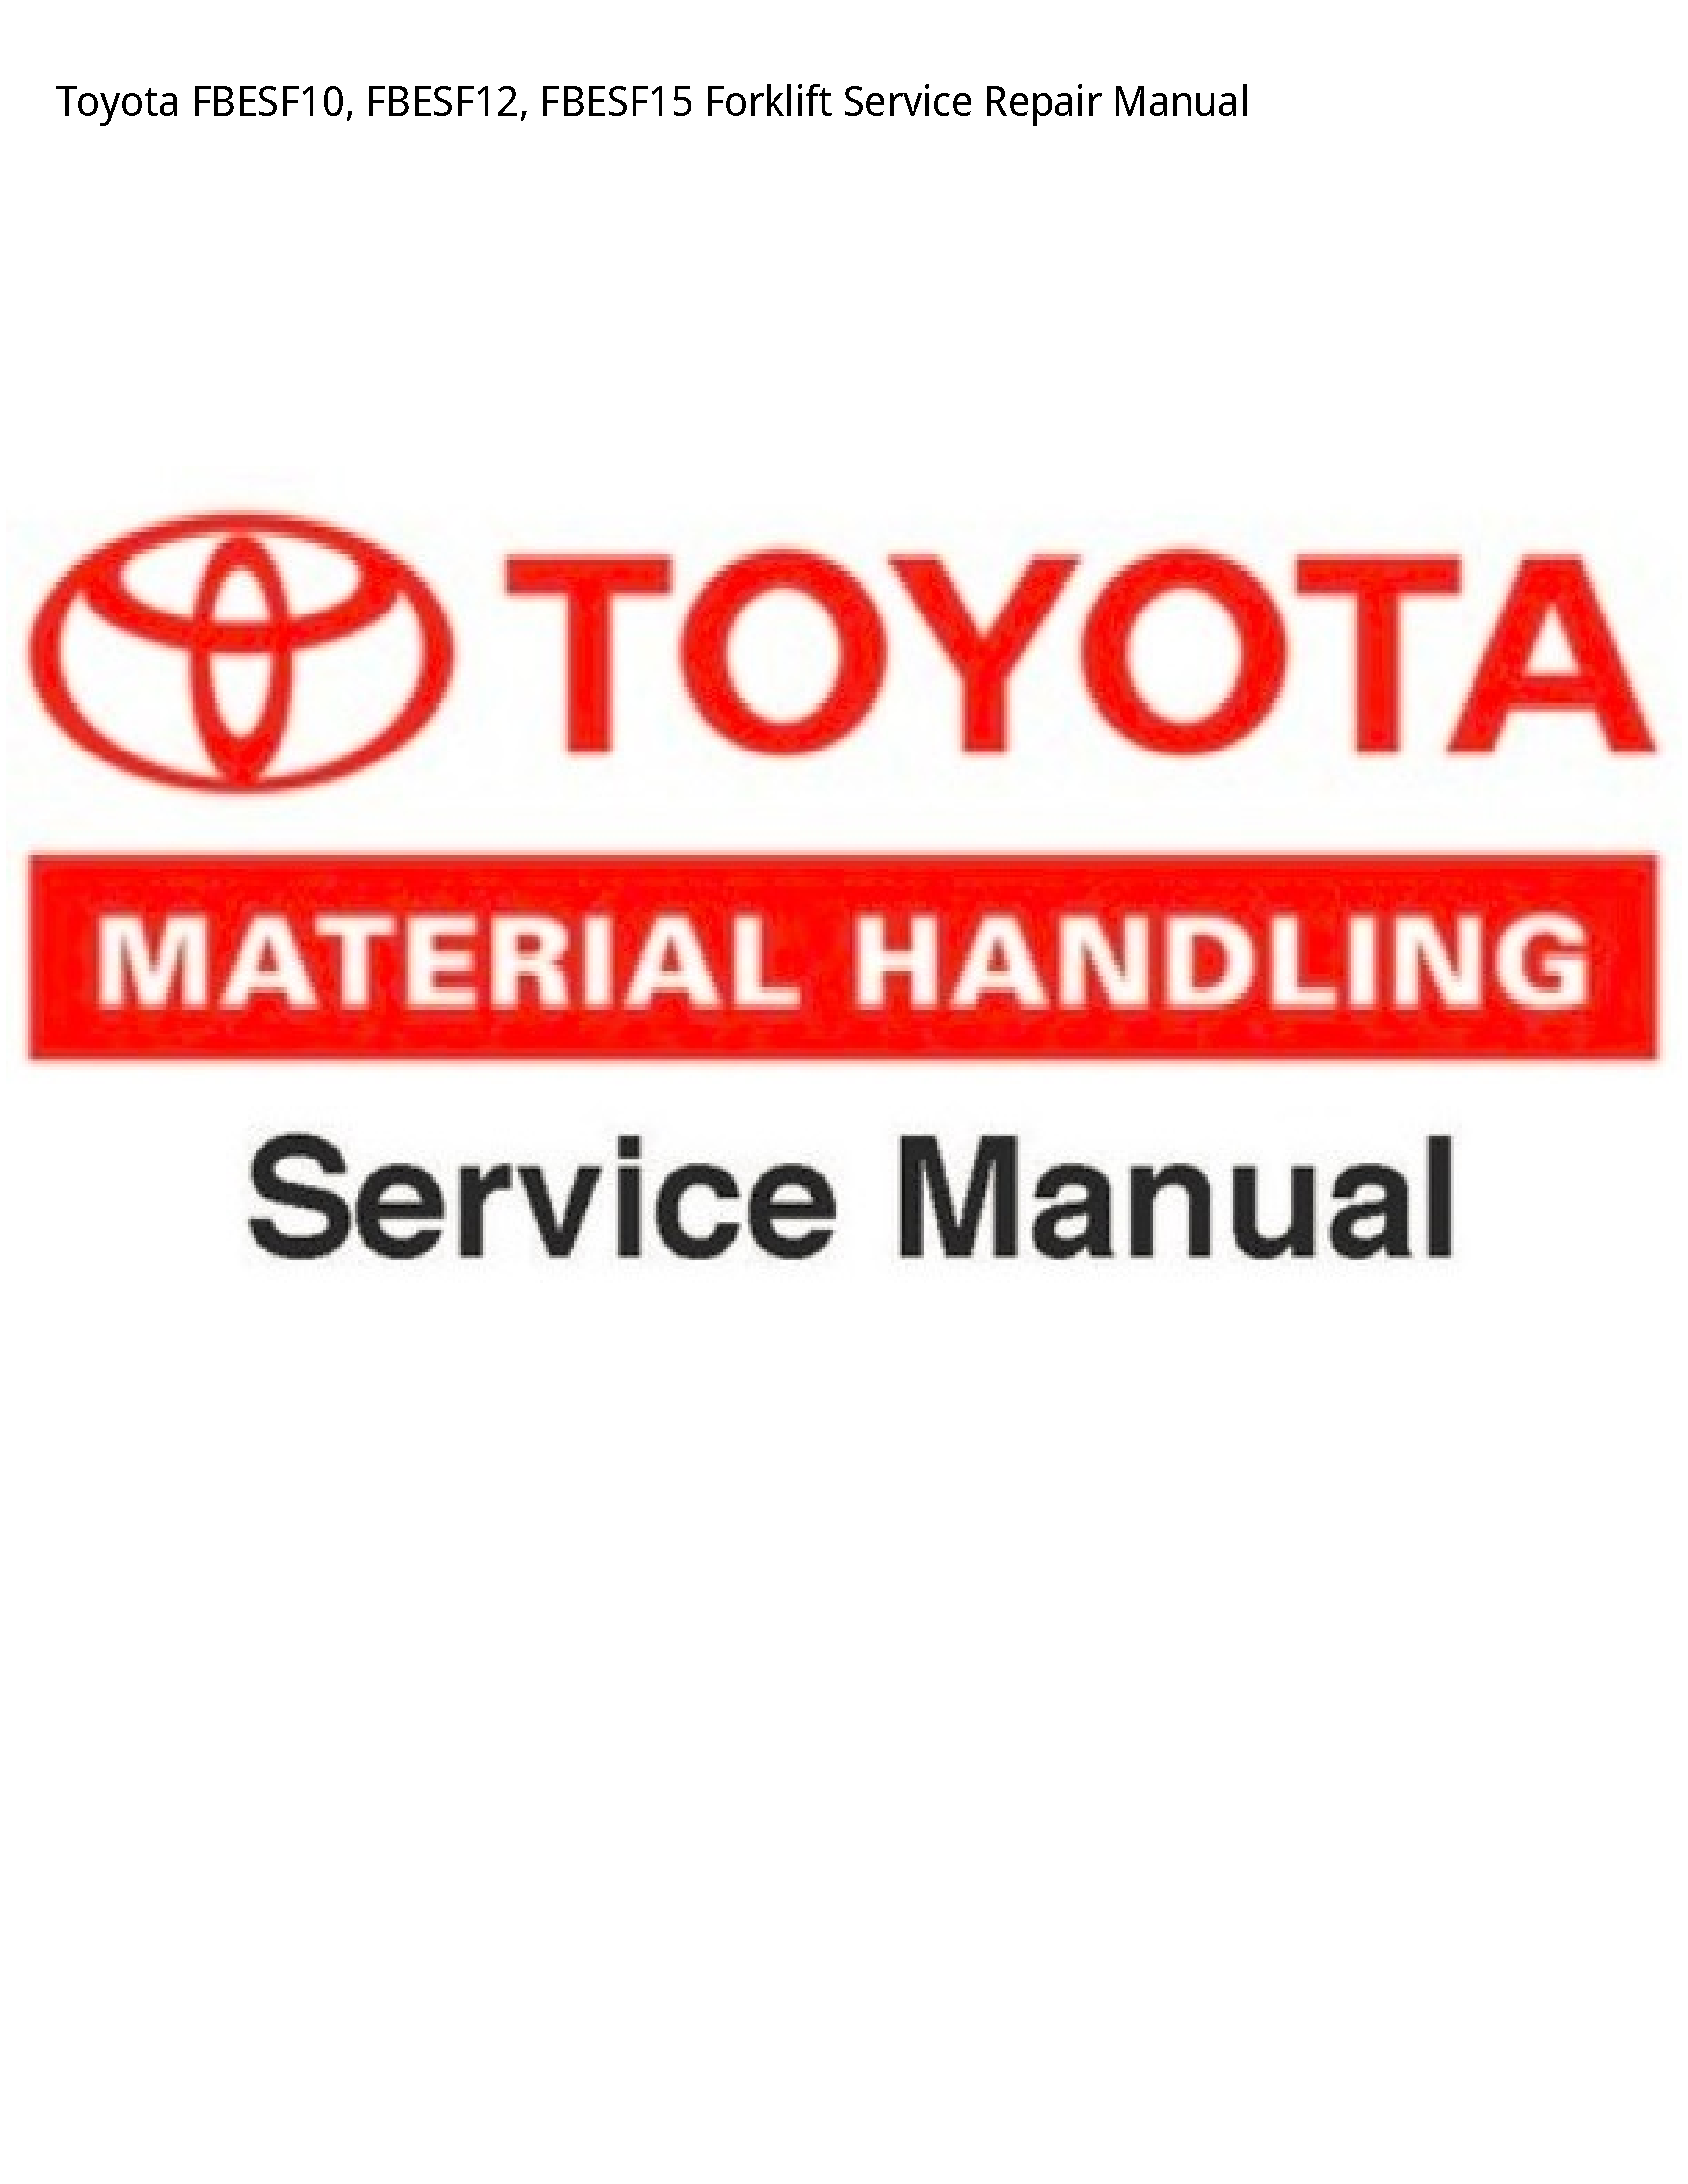 Toyota FBESF10 Forklift manual